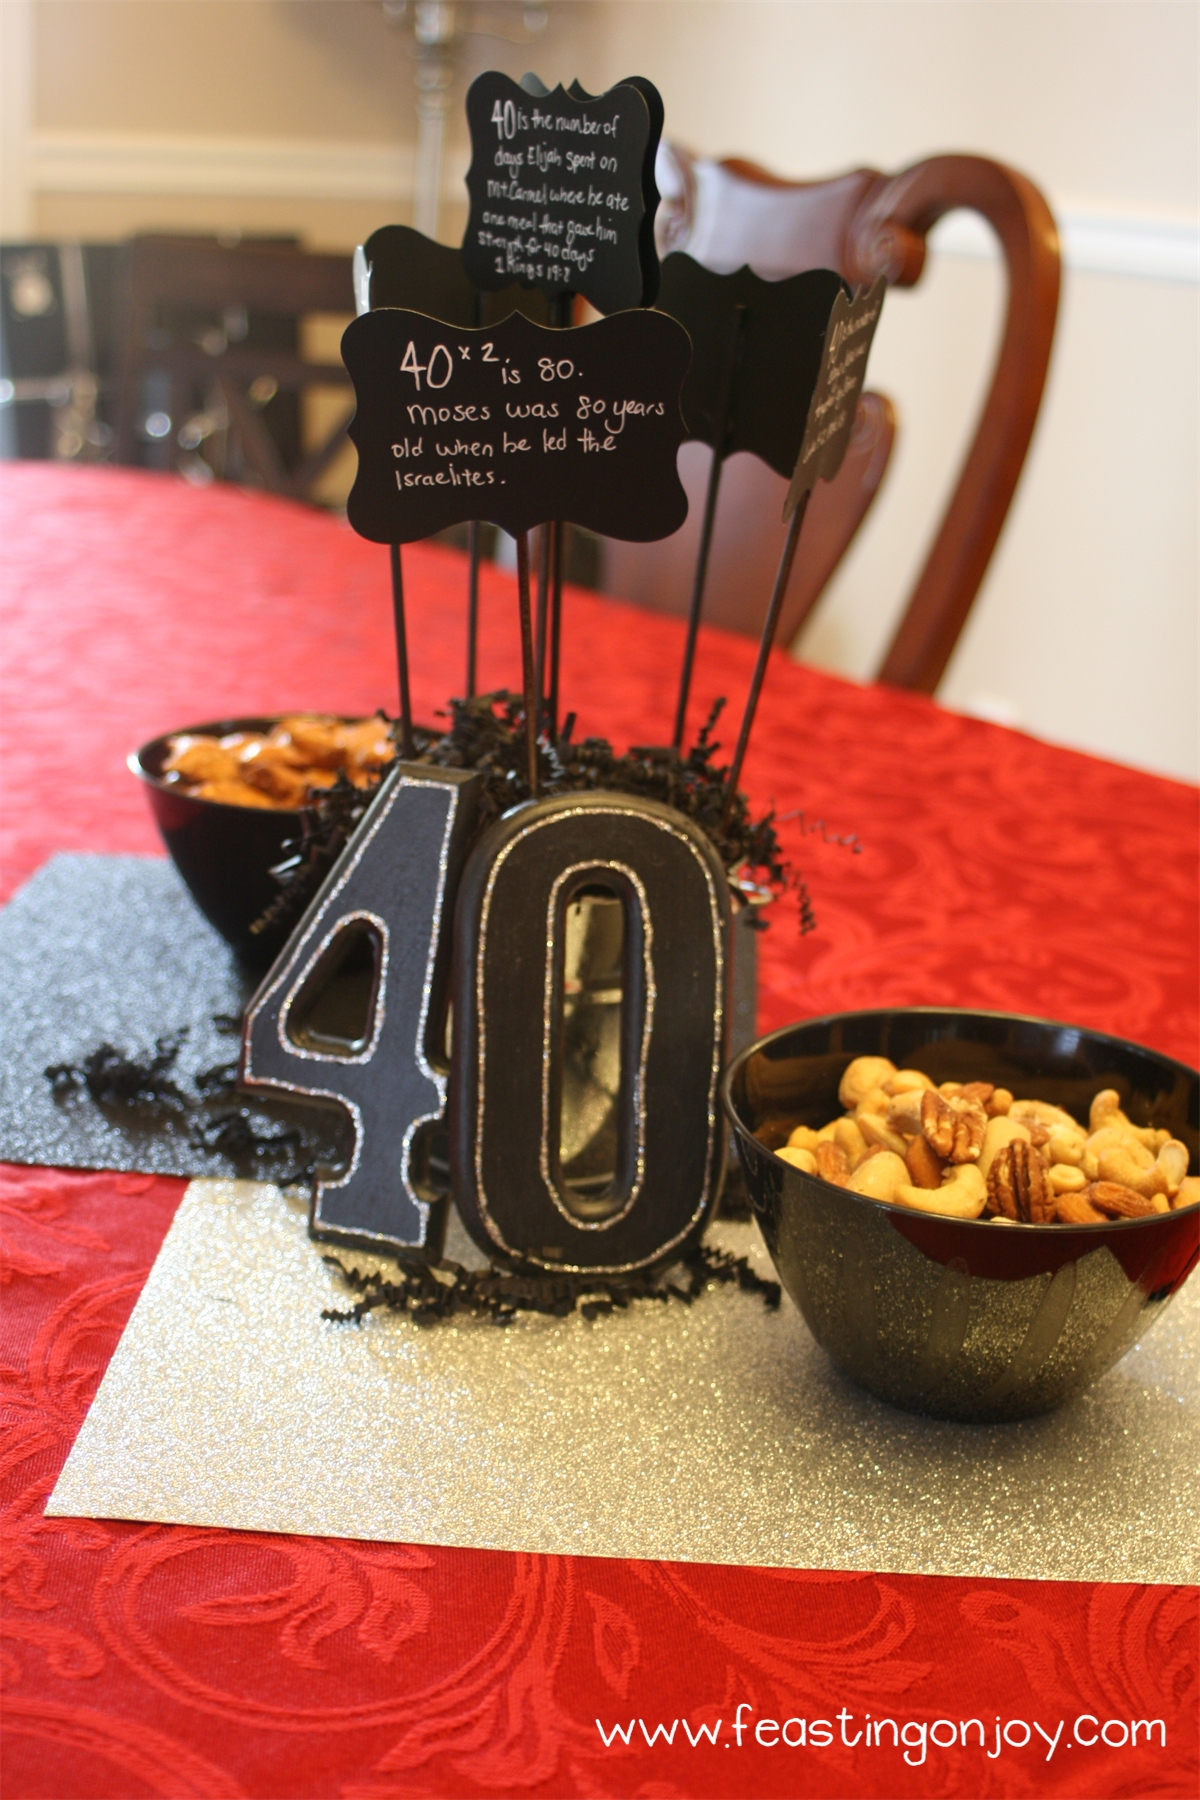 A Manly 40th Birthday Party Free Feasting On Joy Table Decorations Centerpieces